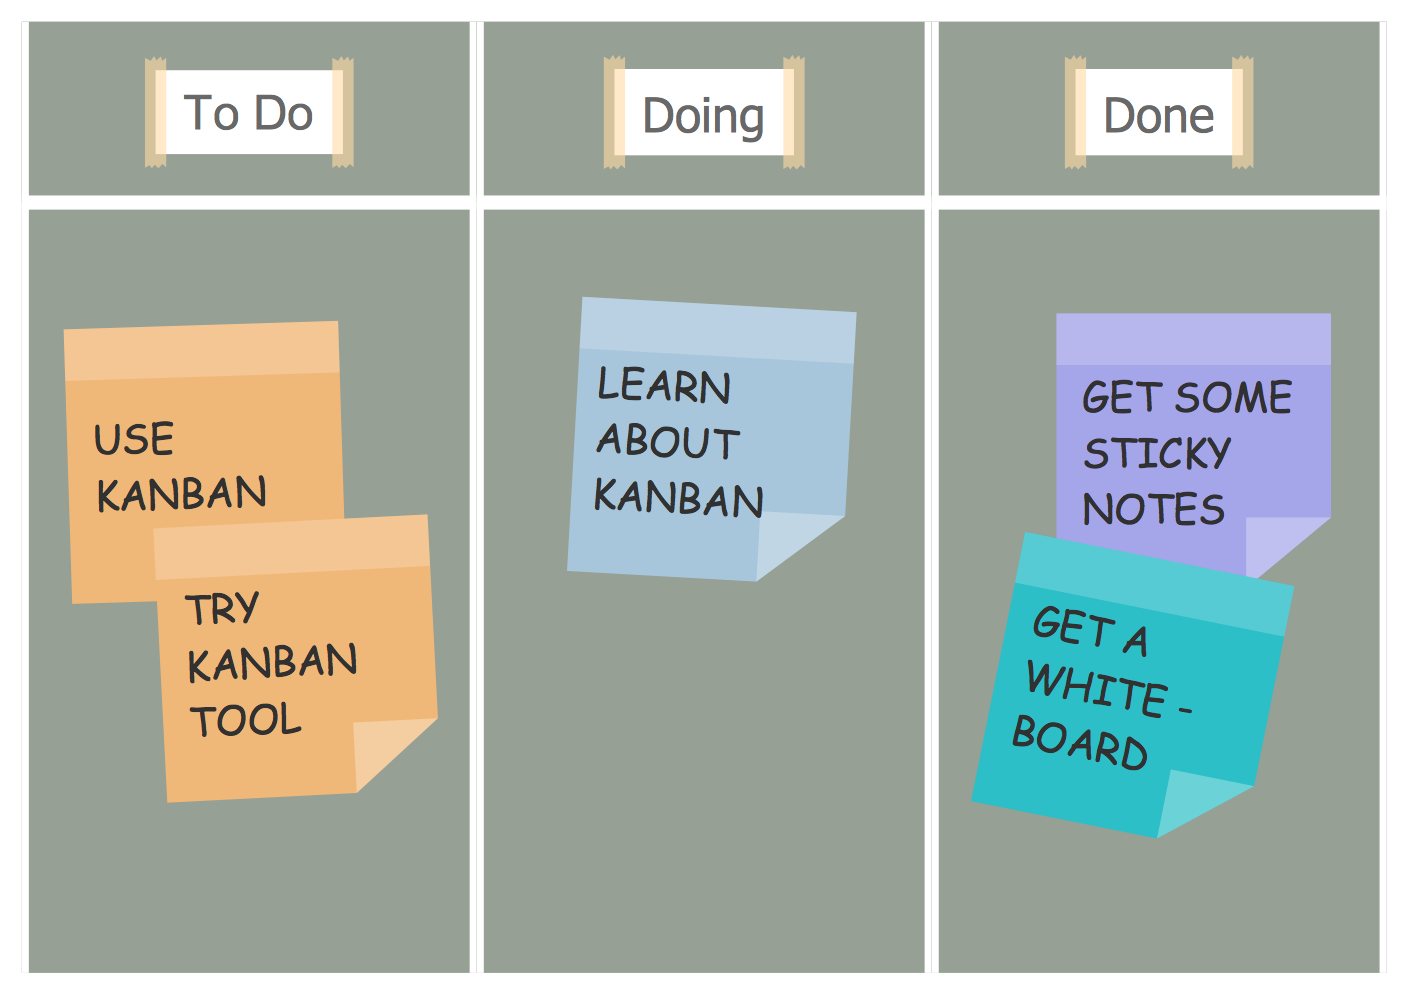 SCRUM Workflow - Scrum Board Suggesting to Use Kanban